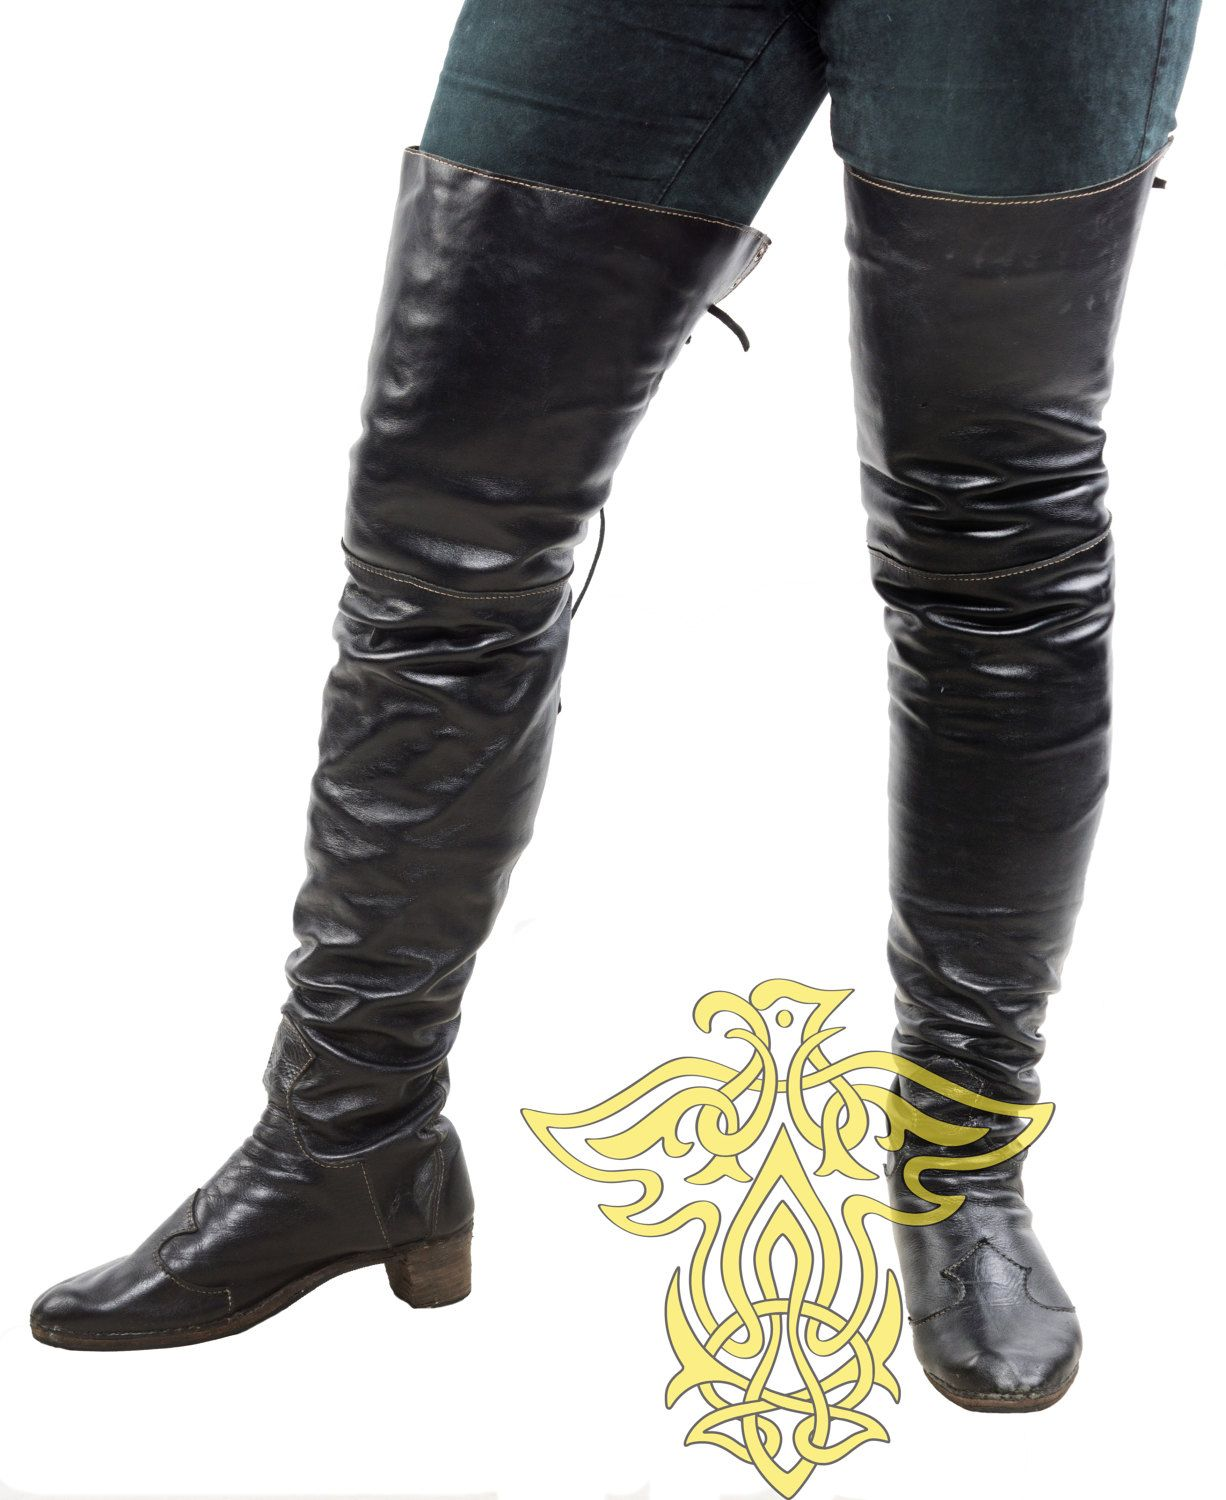 93bd8bc8e4676 High boots ; Pirate Boots, Boots Musketeers; cosplay; LARP ...